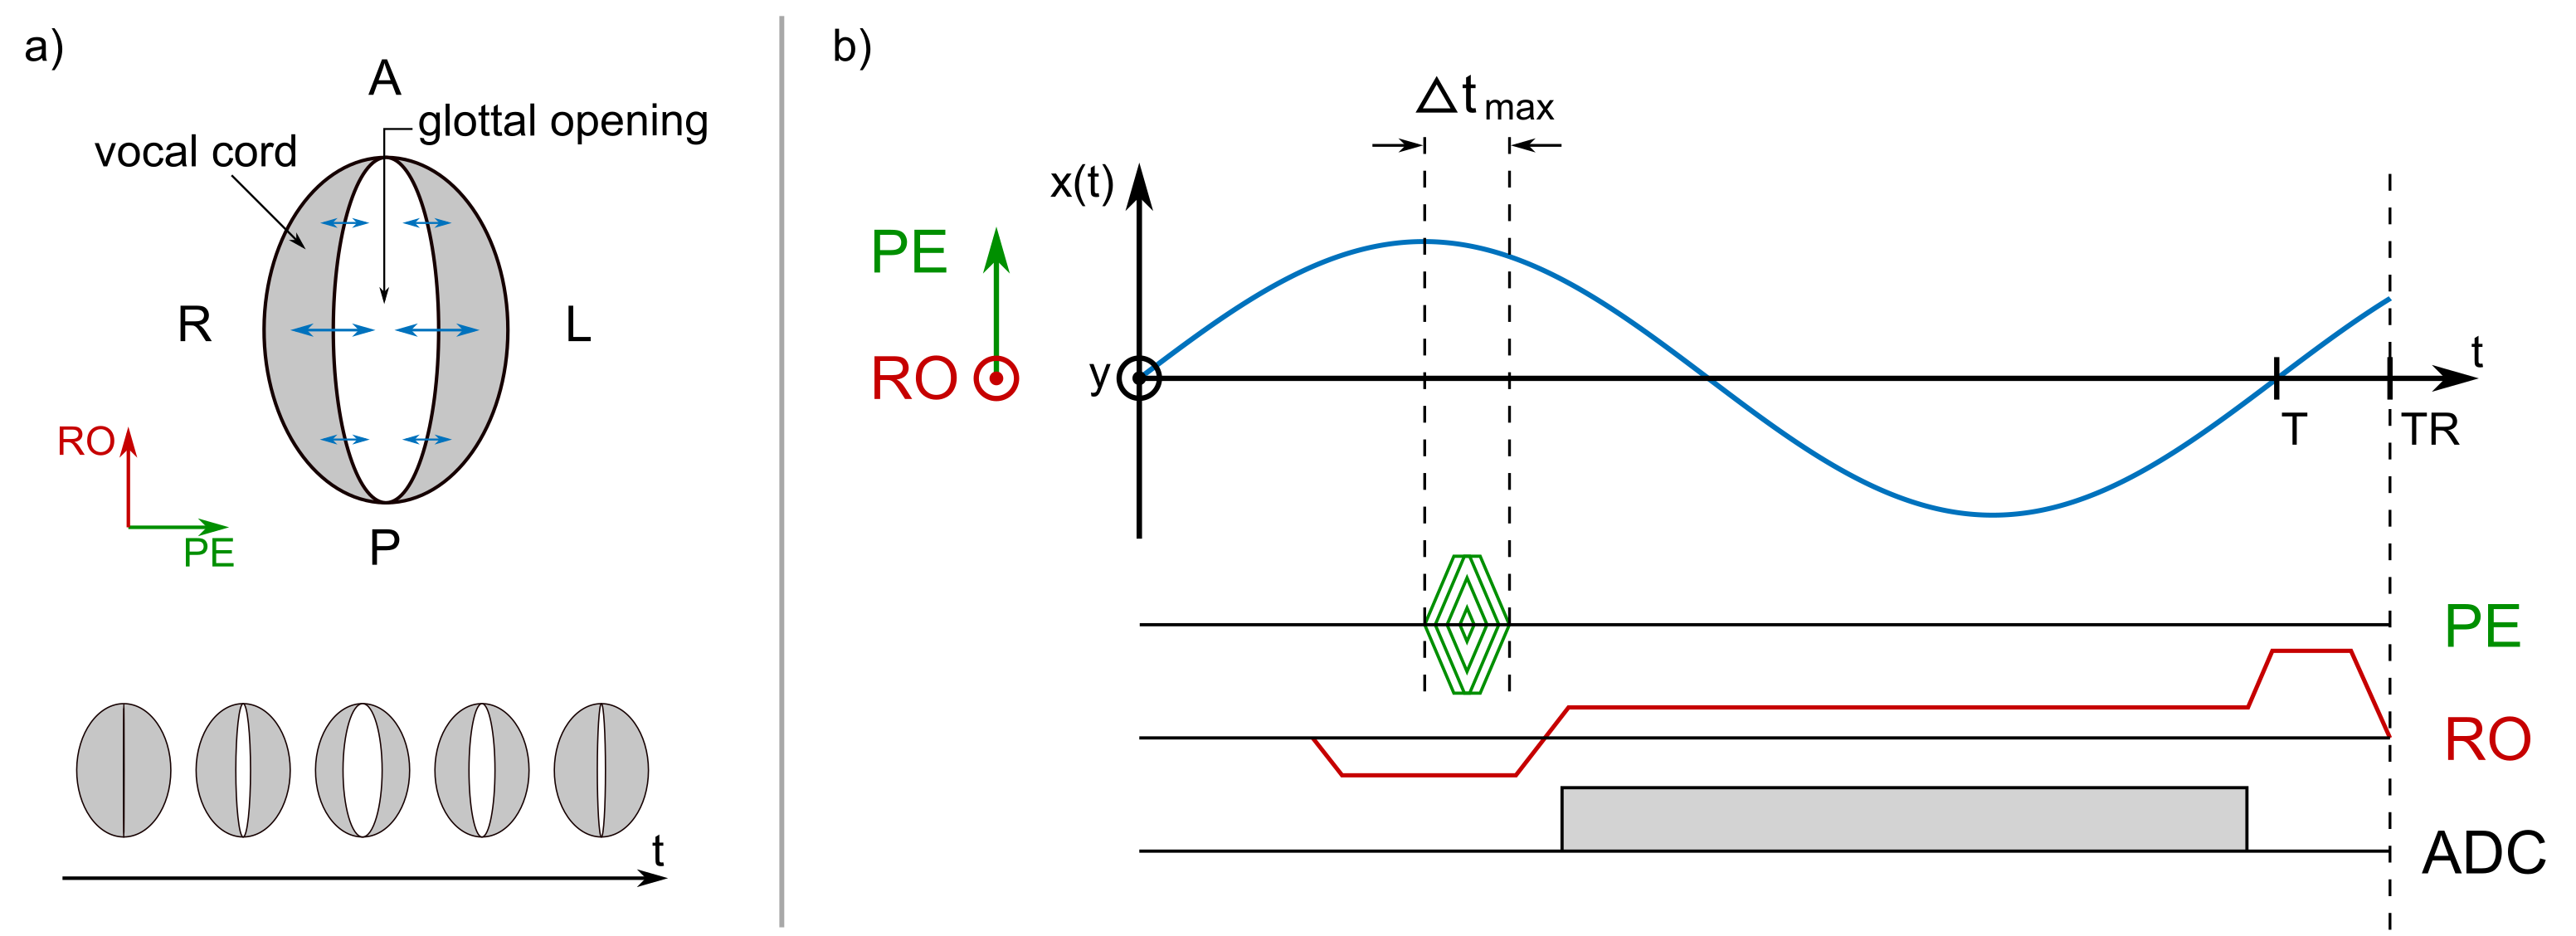 0383 highspeed imaging with sub millisecond temporal resolution of the vocal folds oscillations using egg gated gradient echo with rapid phase encoding johannes fischer1 timo abels1 ali caglar ozen1 2 matthias echternach3 bernhard richter